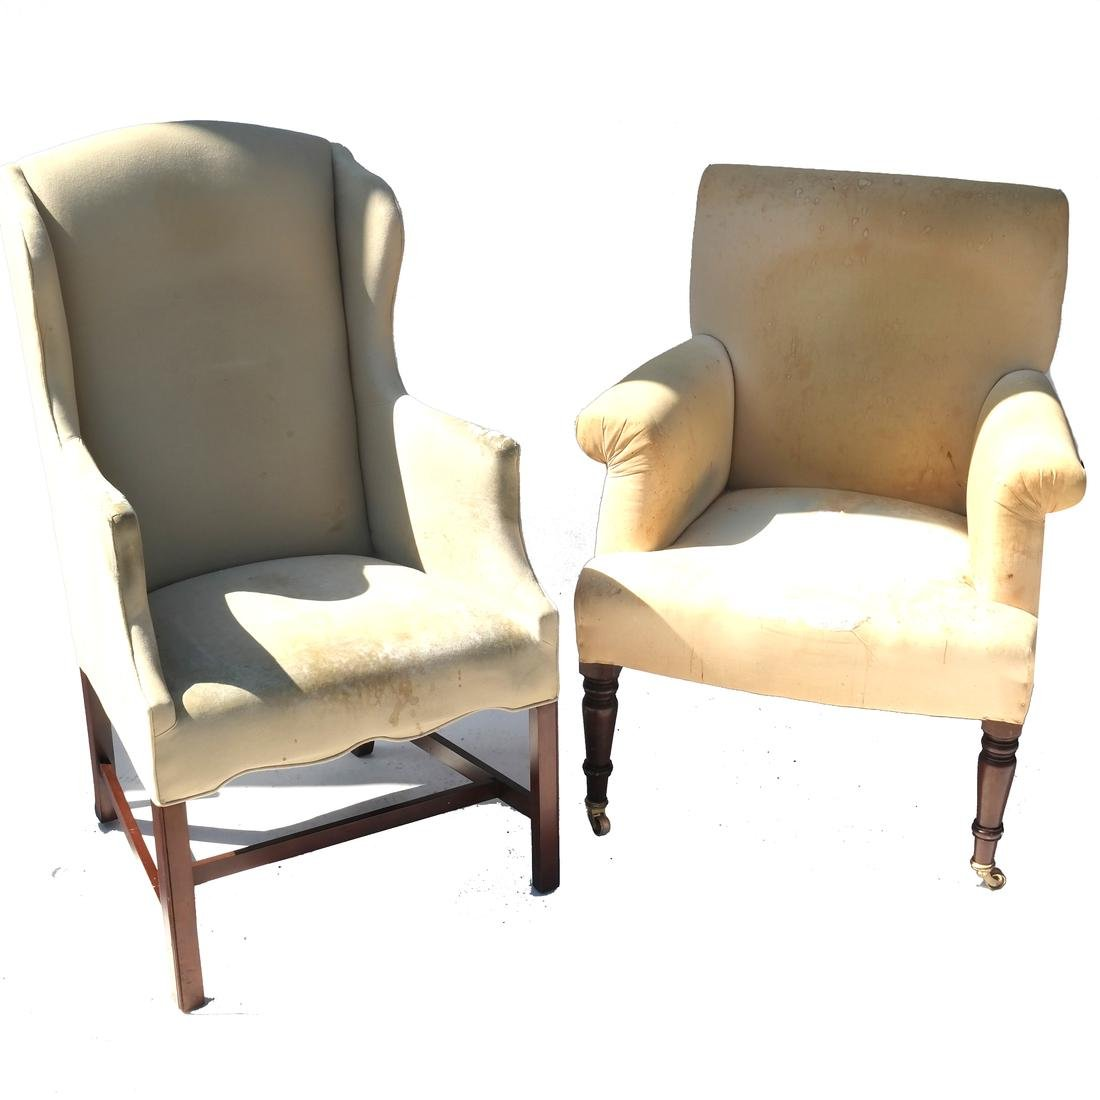 Antique English Library & Wing Chair